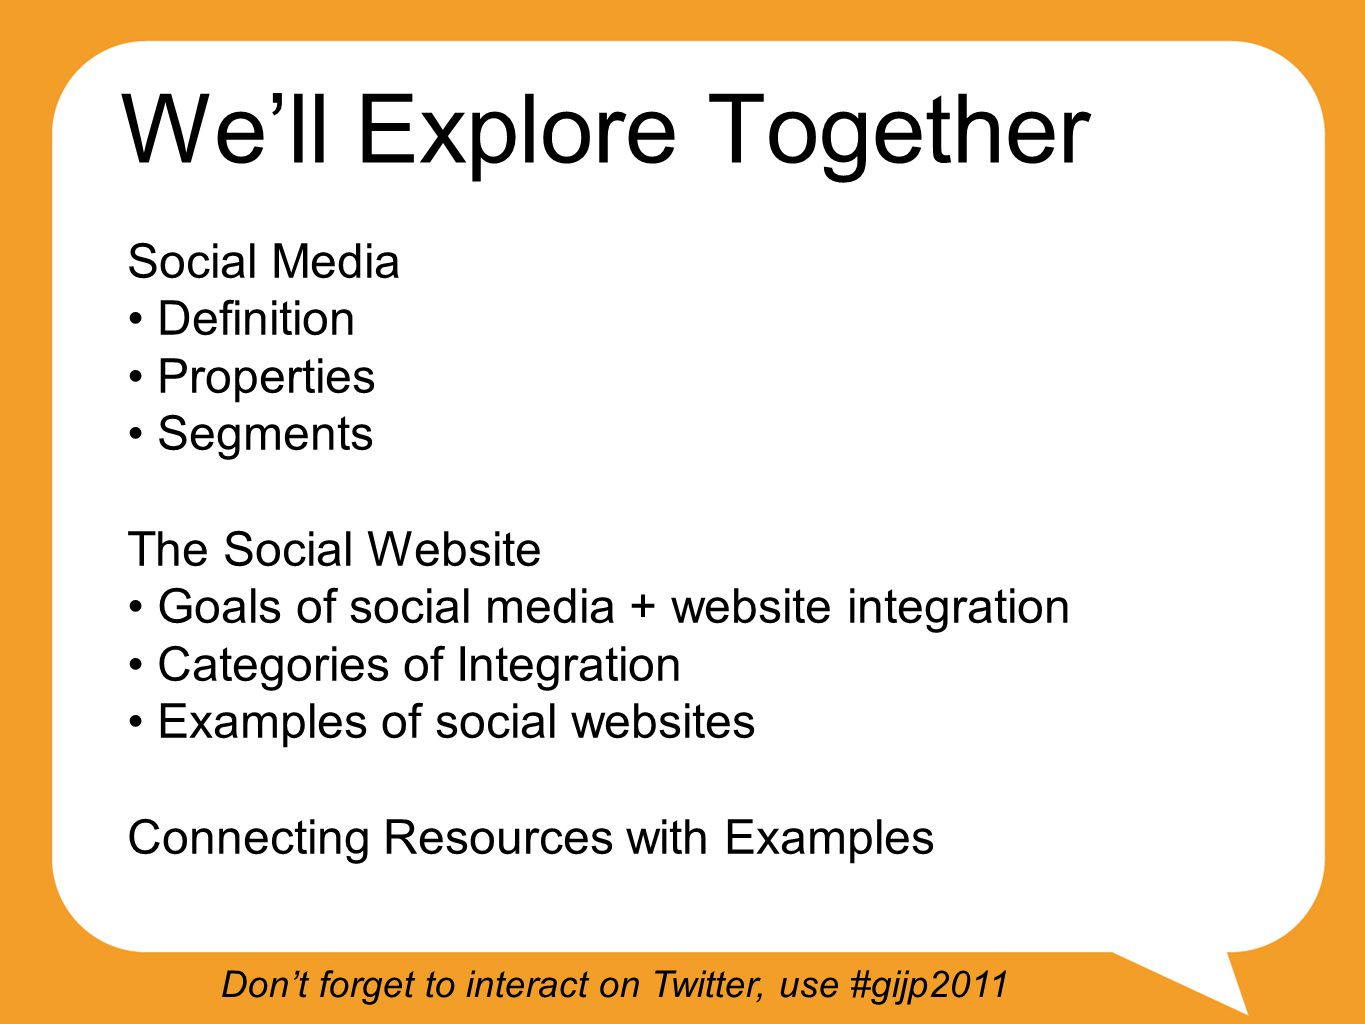 We'll Explore Together Social Media Definition Properties Segments The Social Website Goals of social media + website integration Categories of Integration Examples of social websites Connecting Resources with Examples Don't forget to interact on Twitter, use #gijp2011